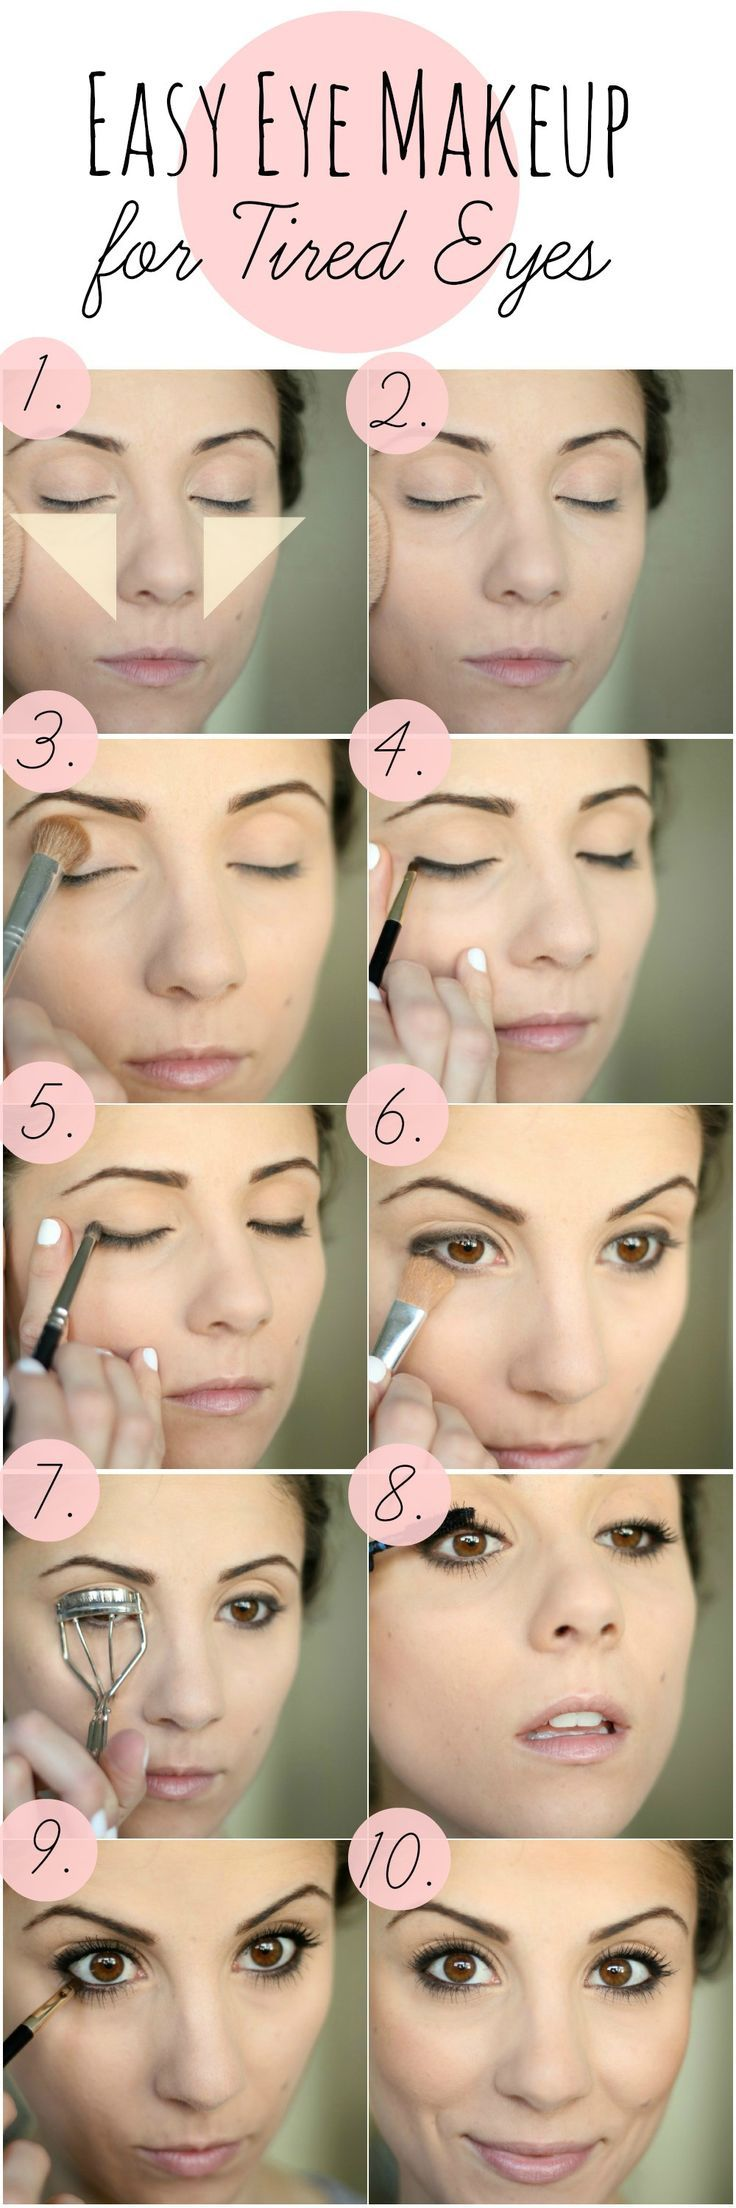 Searching for ways to change up your look or establish a new (and quick!) makeup routine? Check out these five tutorials!